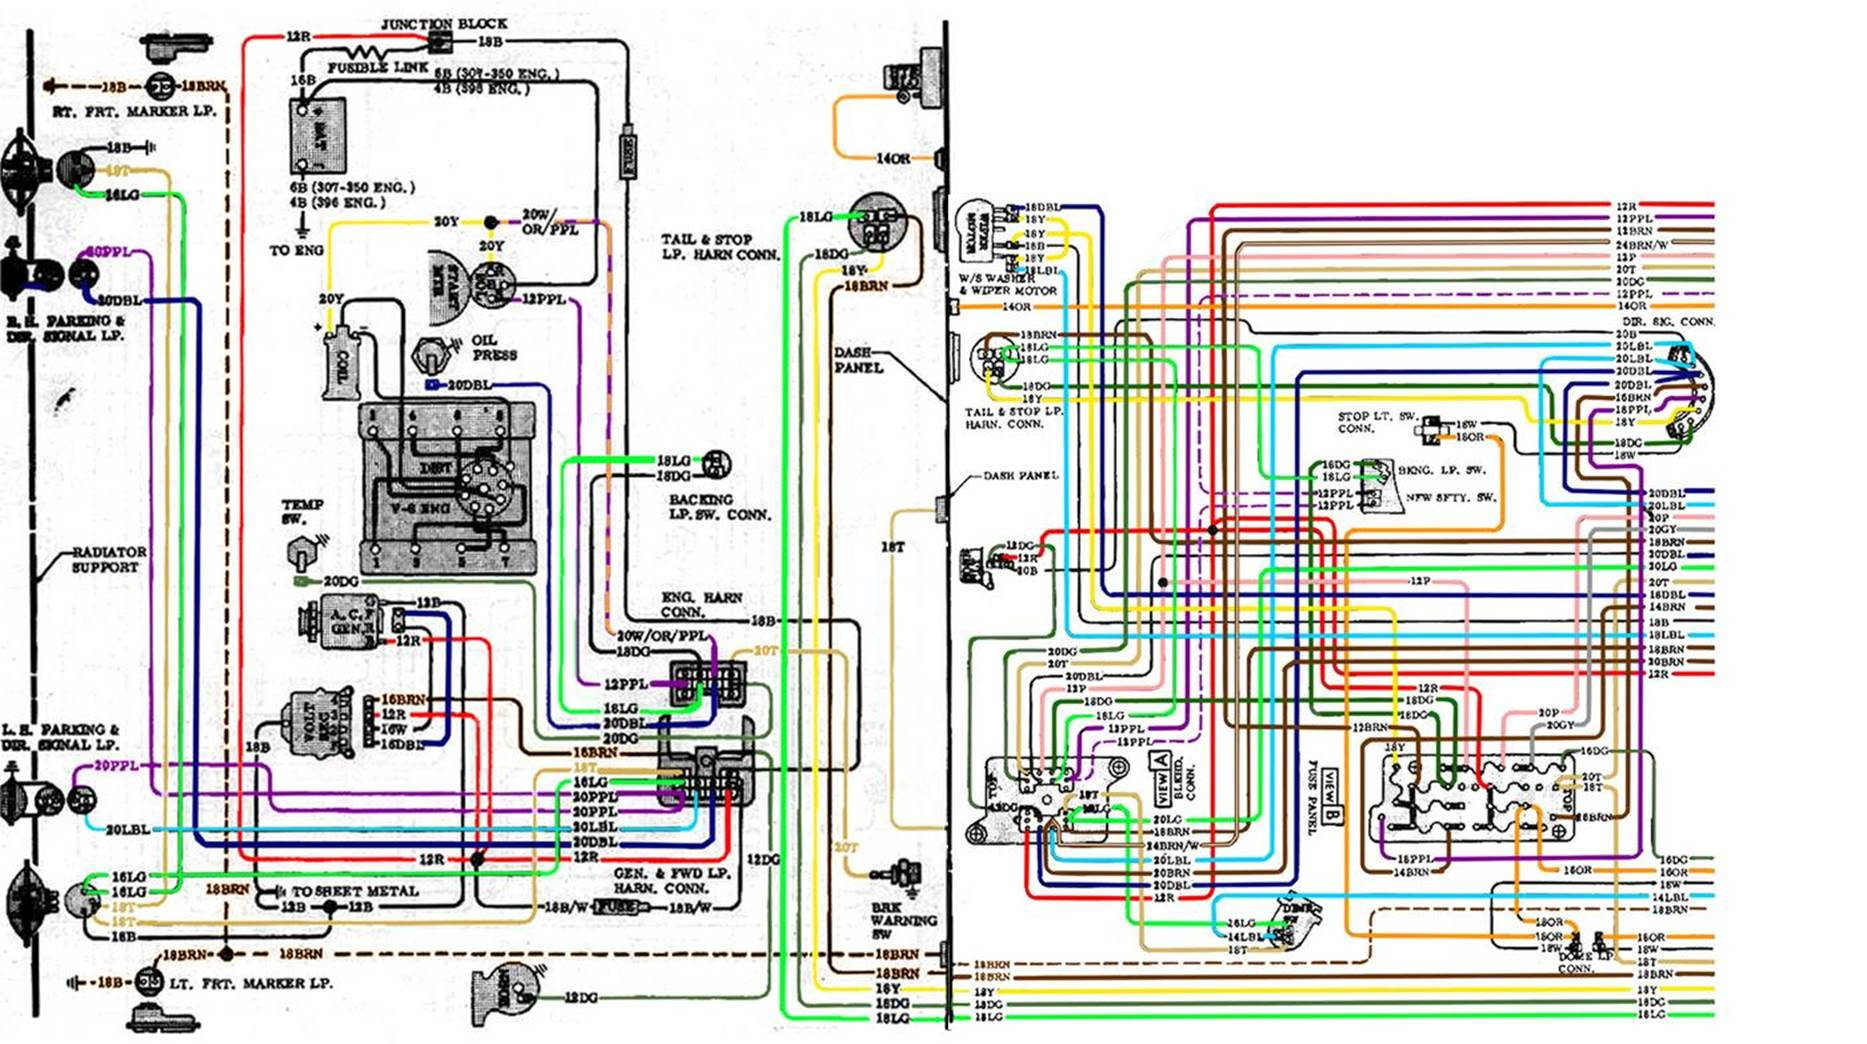 image002 67 72 chevy wiring diagram 1972 chevy pickup wiring schematic at honlapkeszites.co